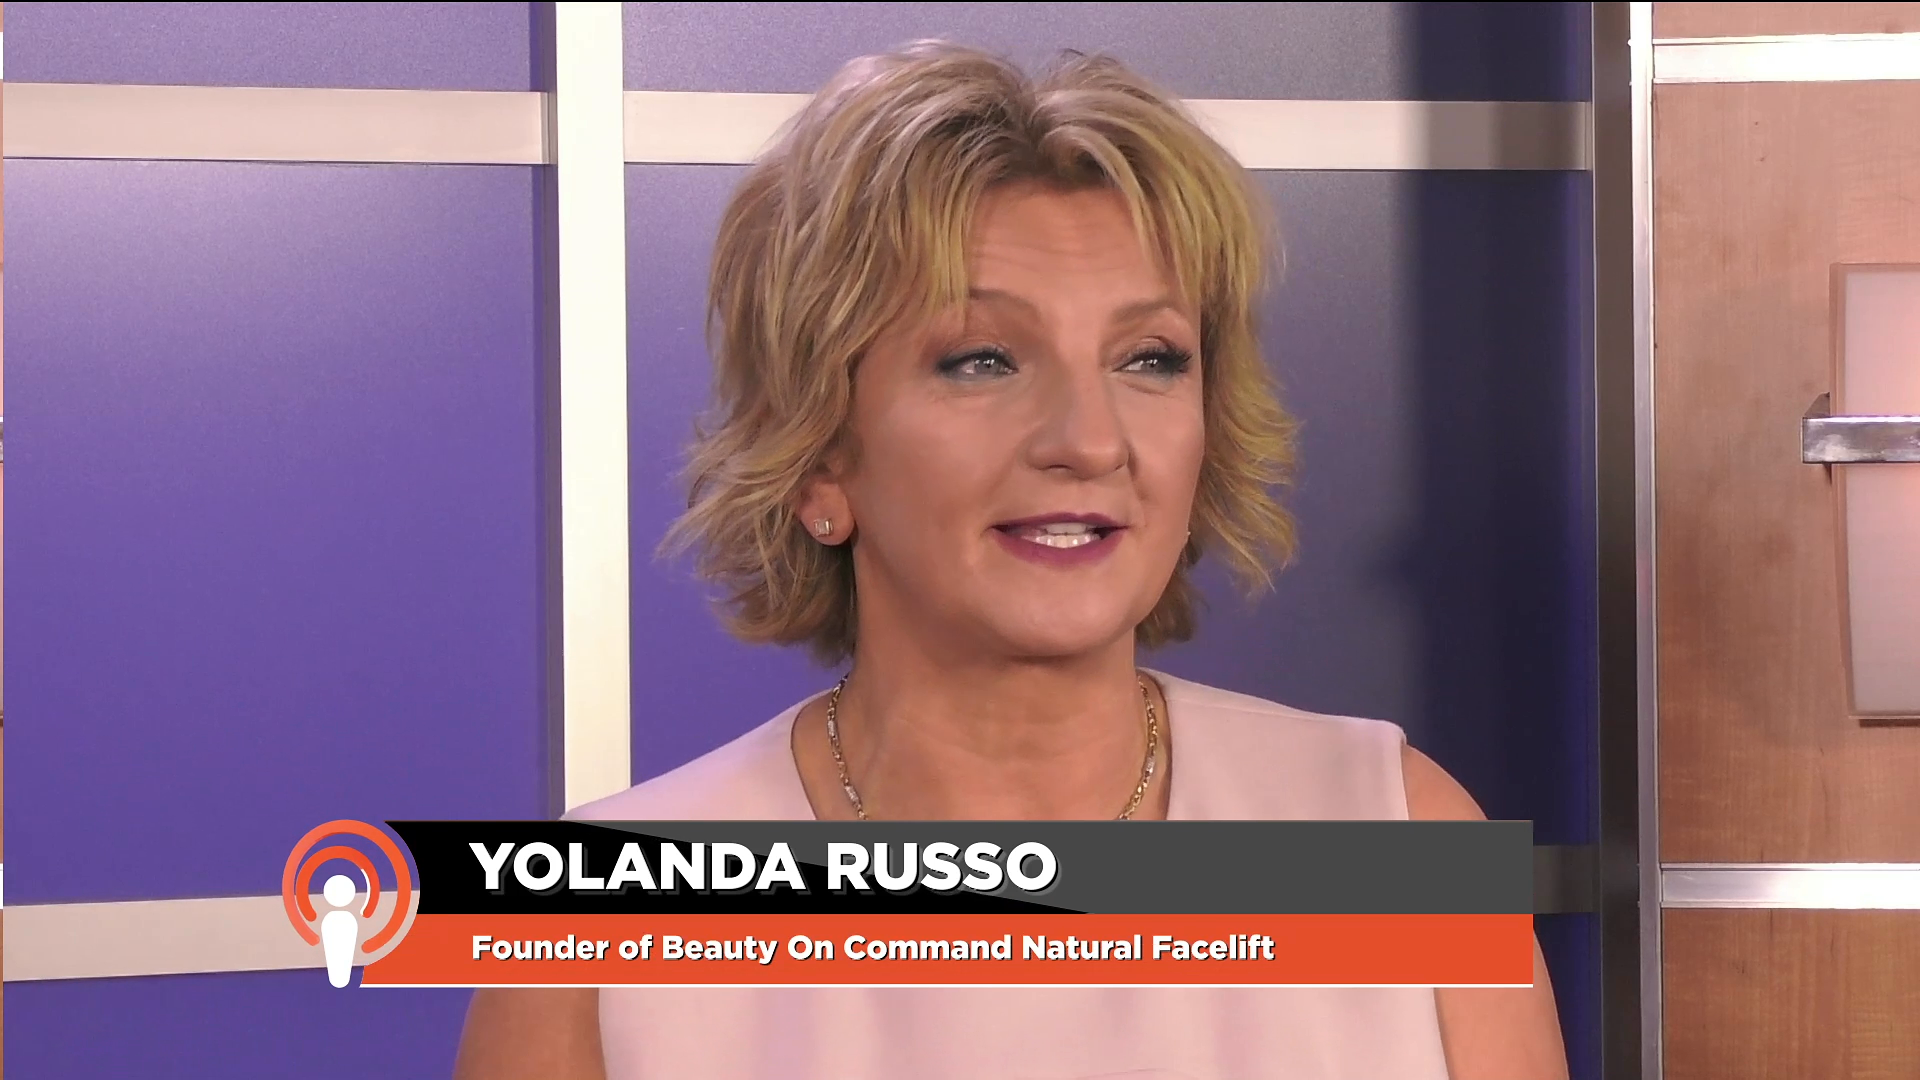 Yolanda Russo_ speaker_ life coach and skin care expert